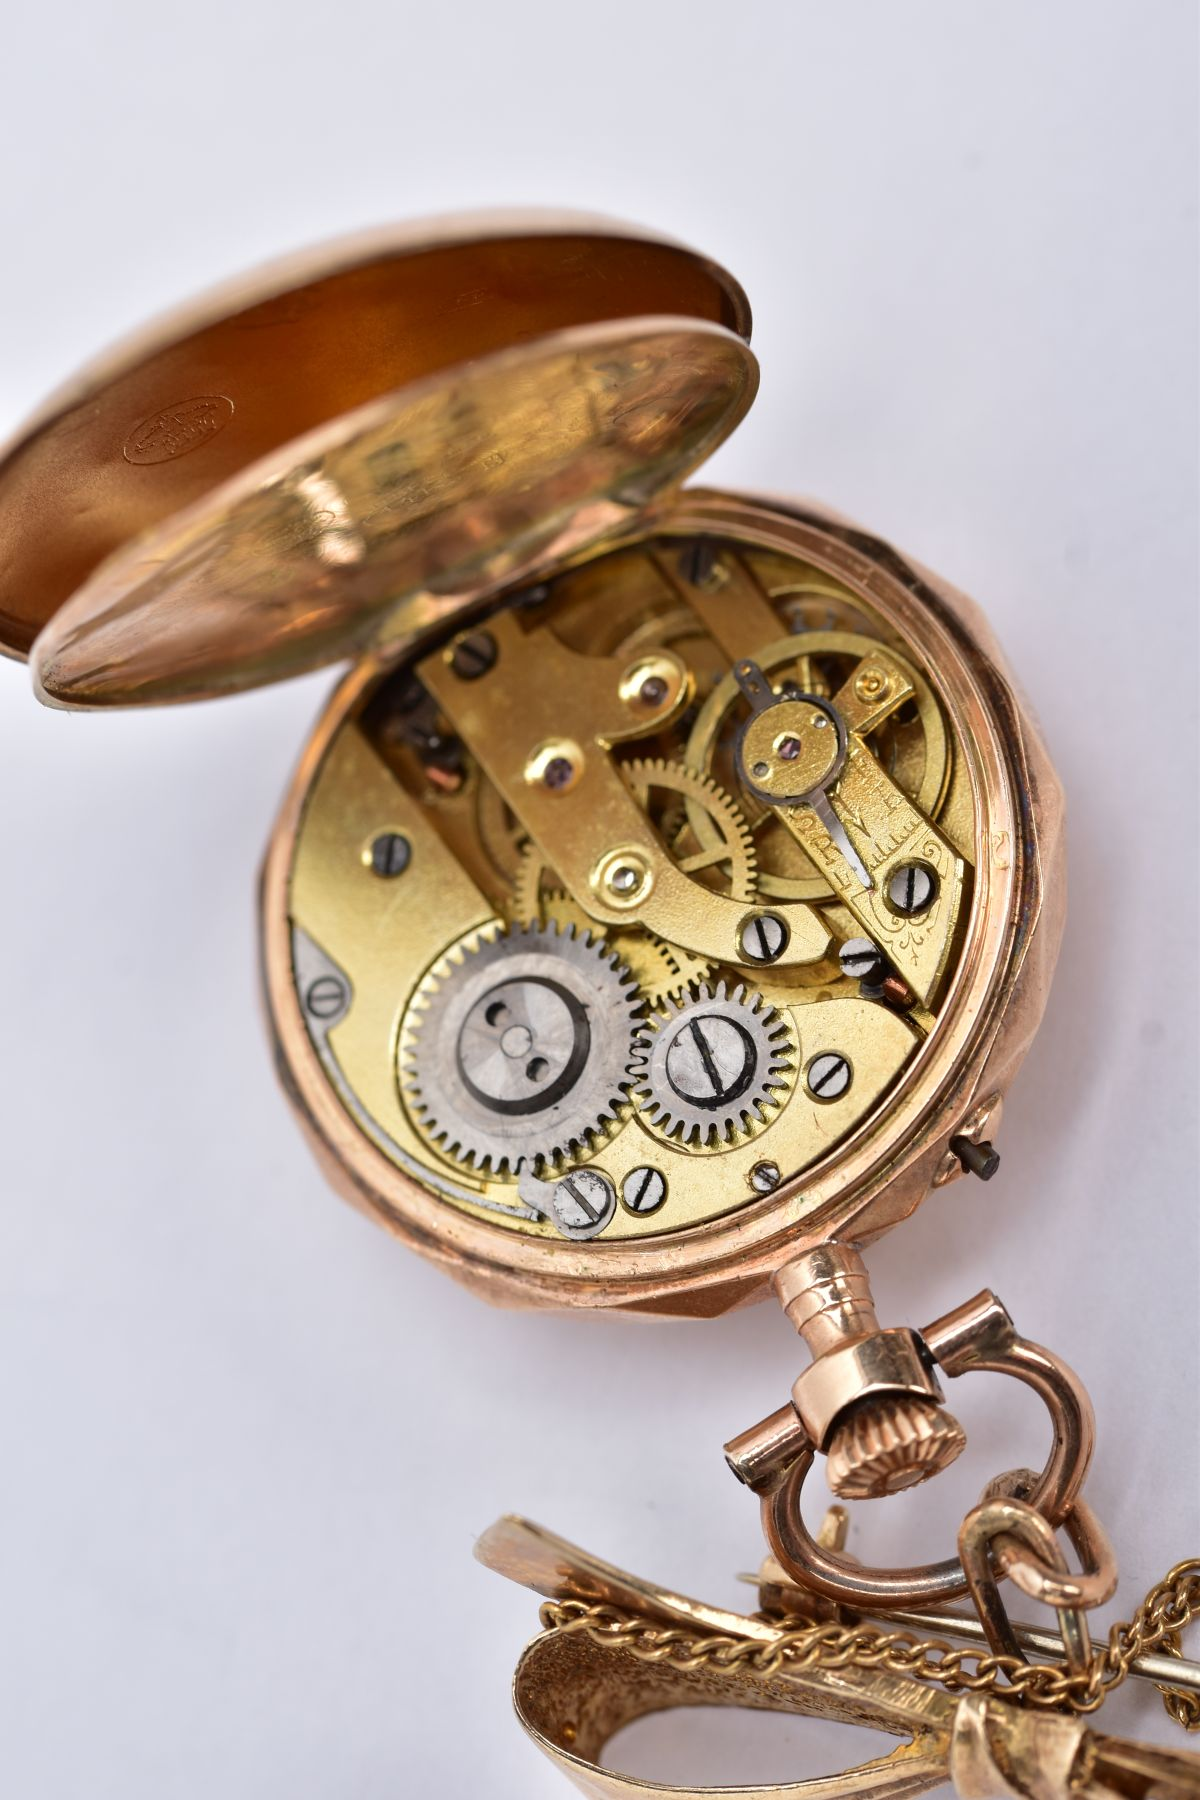 AN EARLY 20TH CENTURY GOLD AND DIAMOND LADY'S FOB WATCH, white enamel dial signed 'Elba', case - Image 4 of 5